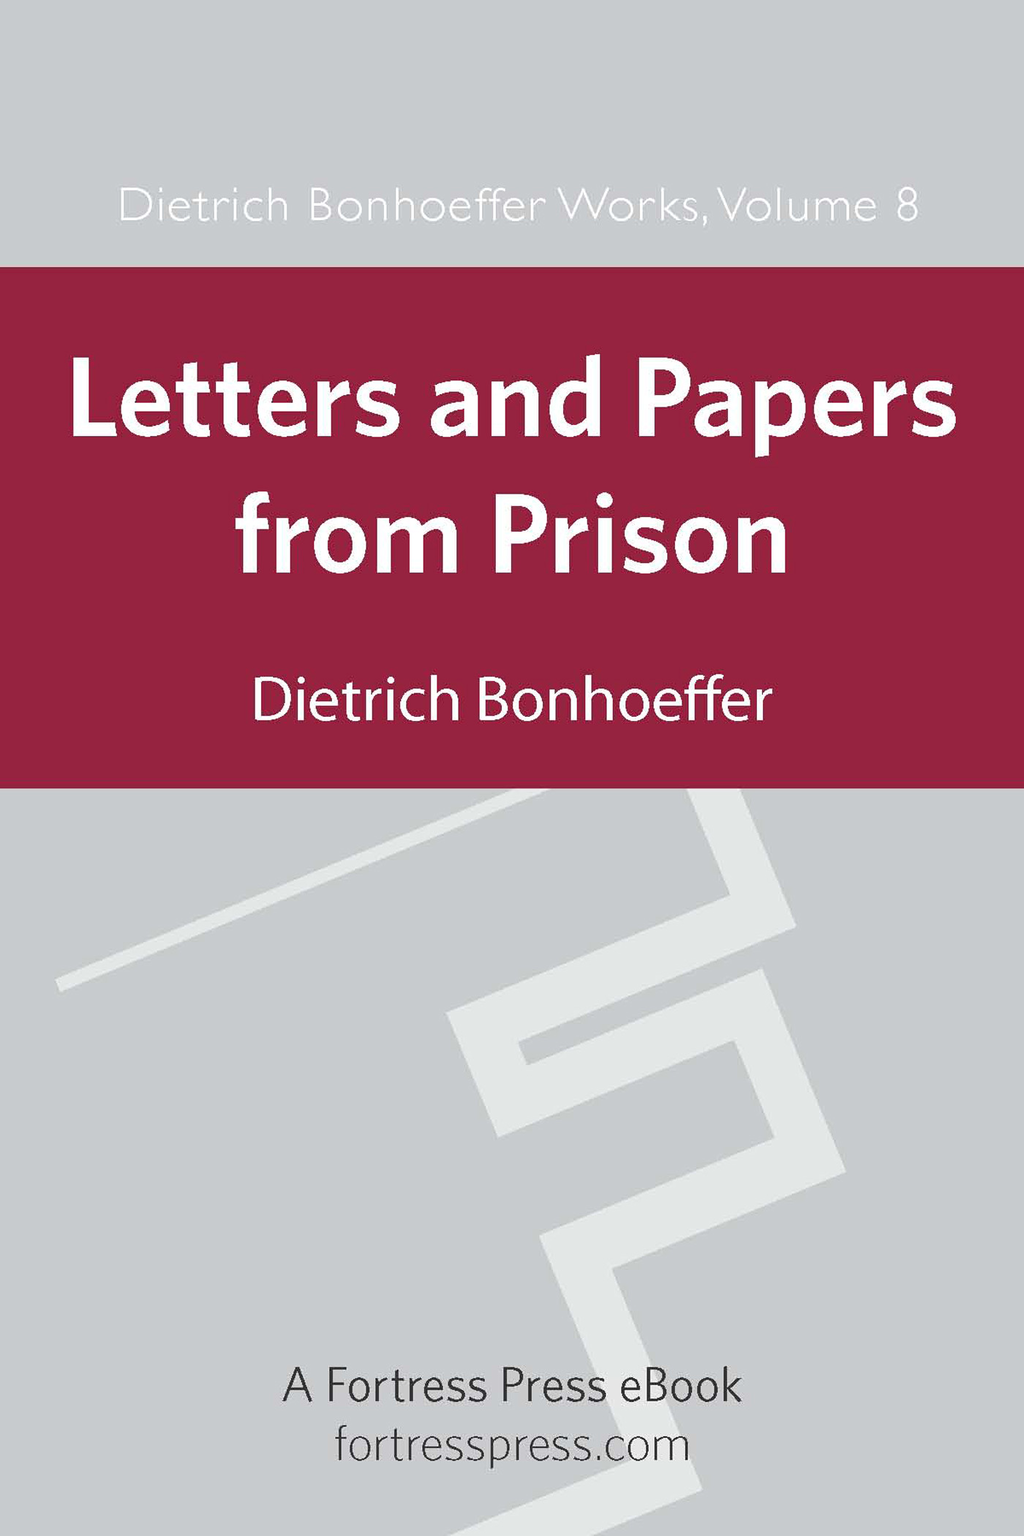 Letters and Papers from Prison DBW Vol 8 By: Dietrich Bonhoeffer